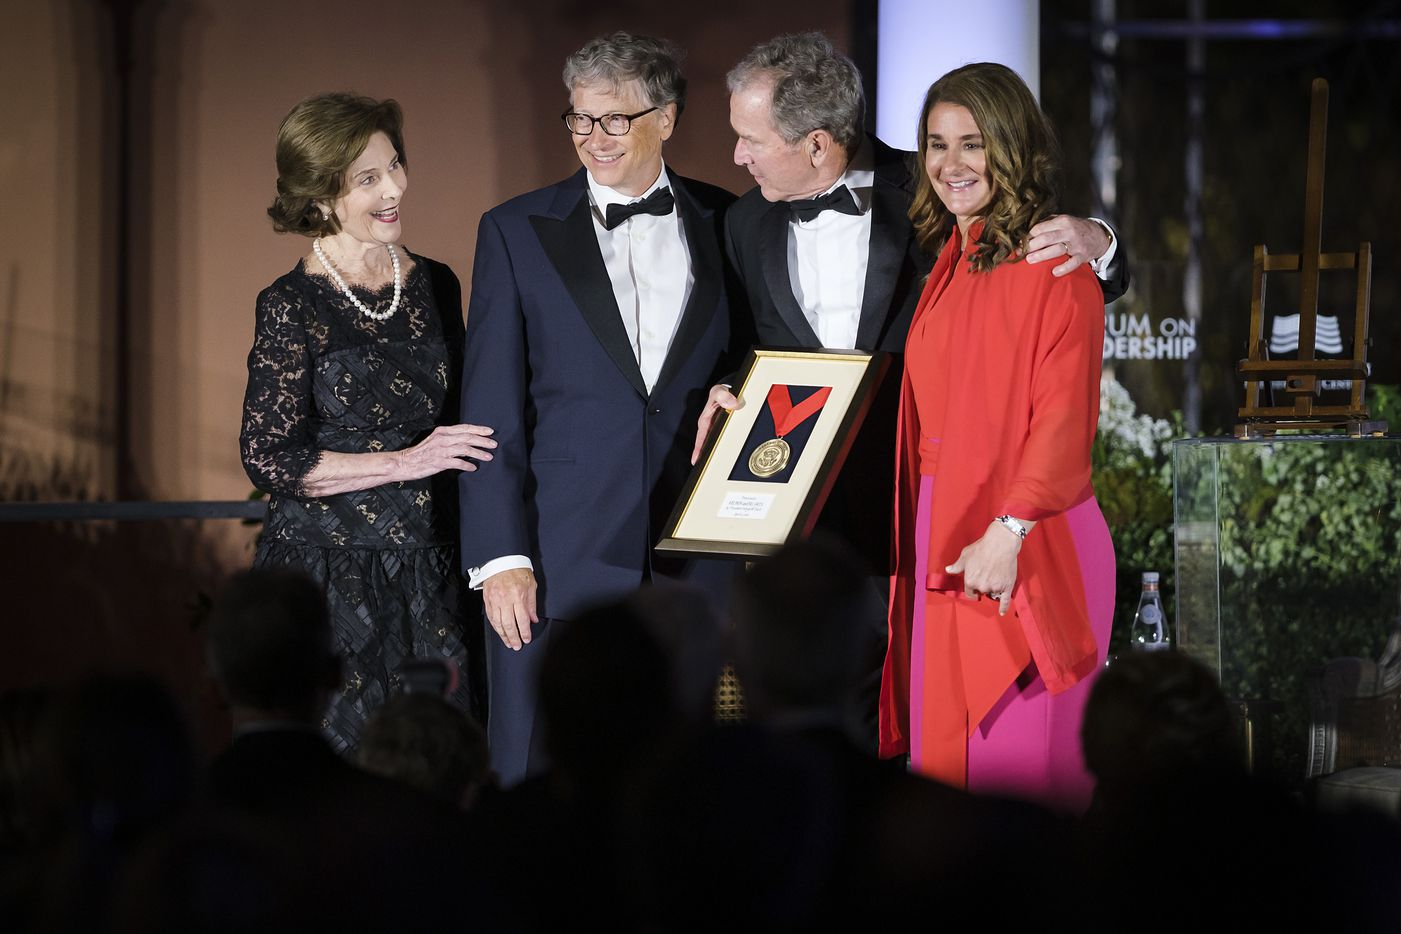 Bill and Melinda Gates receive the George W. Bush Medal for Distinguished Leadership award from President George W. Bush and Laura Bush during the George, W. Bush Presidential CenterÕs 2019 Forum on Leadership Gala at the Rosewood Mansion on Turtle Creek on Thursday, April 11, 2019, in Dallas. (Smiley N. Pool/The Dallas Morning News)